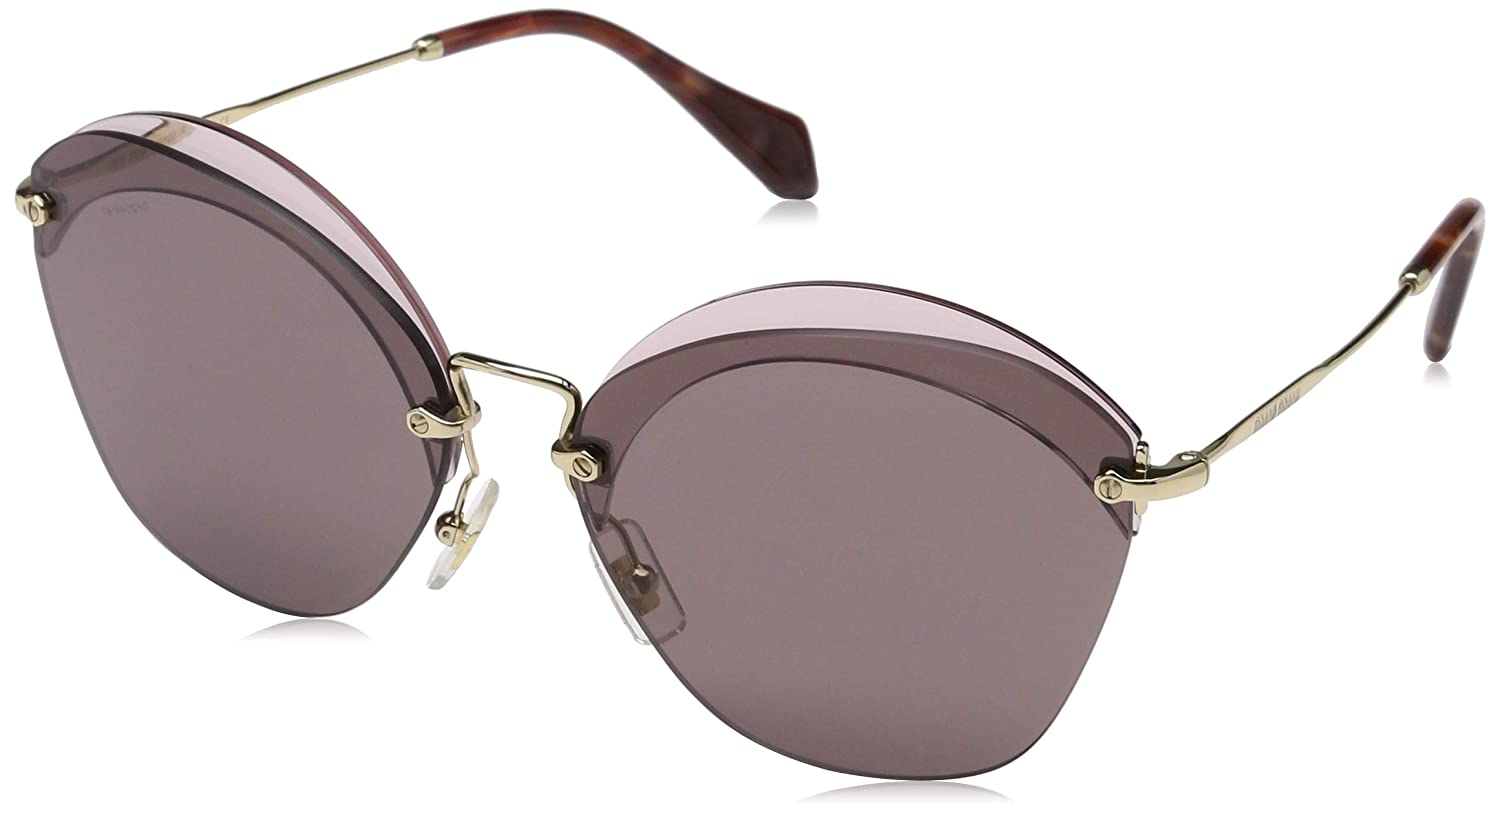 a72bc06e7b21 Miu Miu MU53SS VX36X1 Red MU53SS Oval Sunglasses Lens Category 3 Size 63mm  at Amazon Women s Clothing store